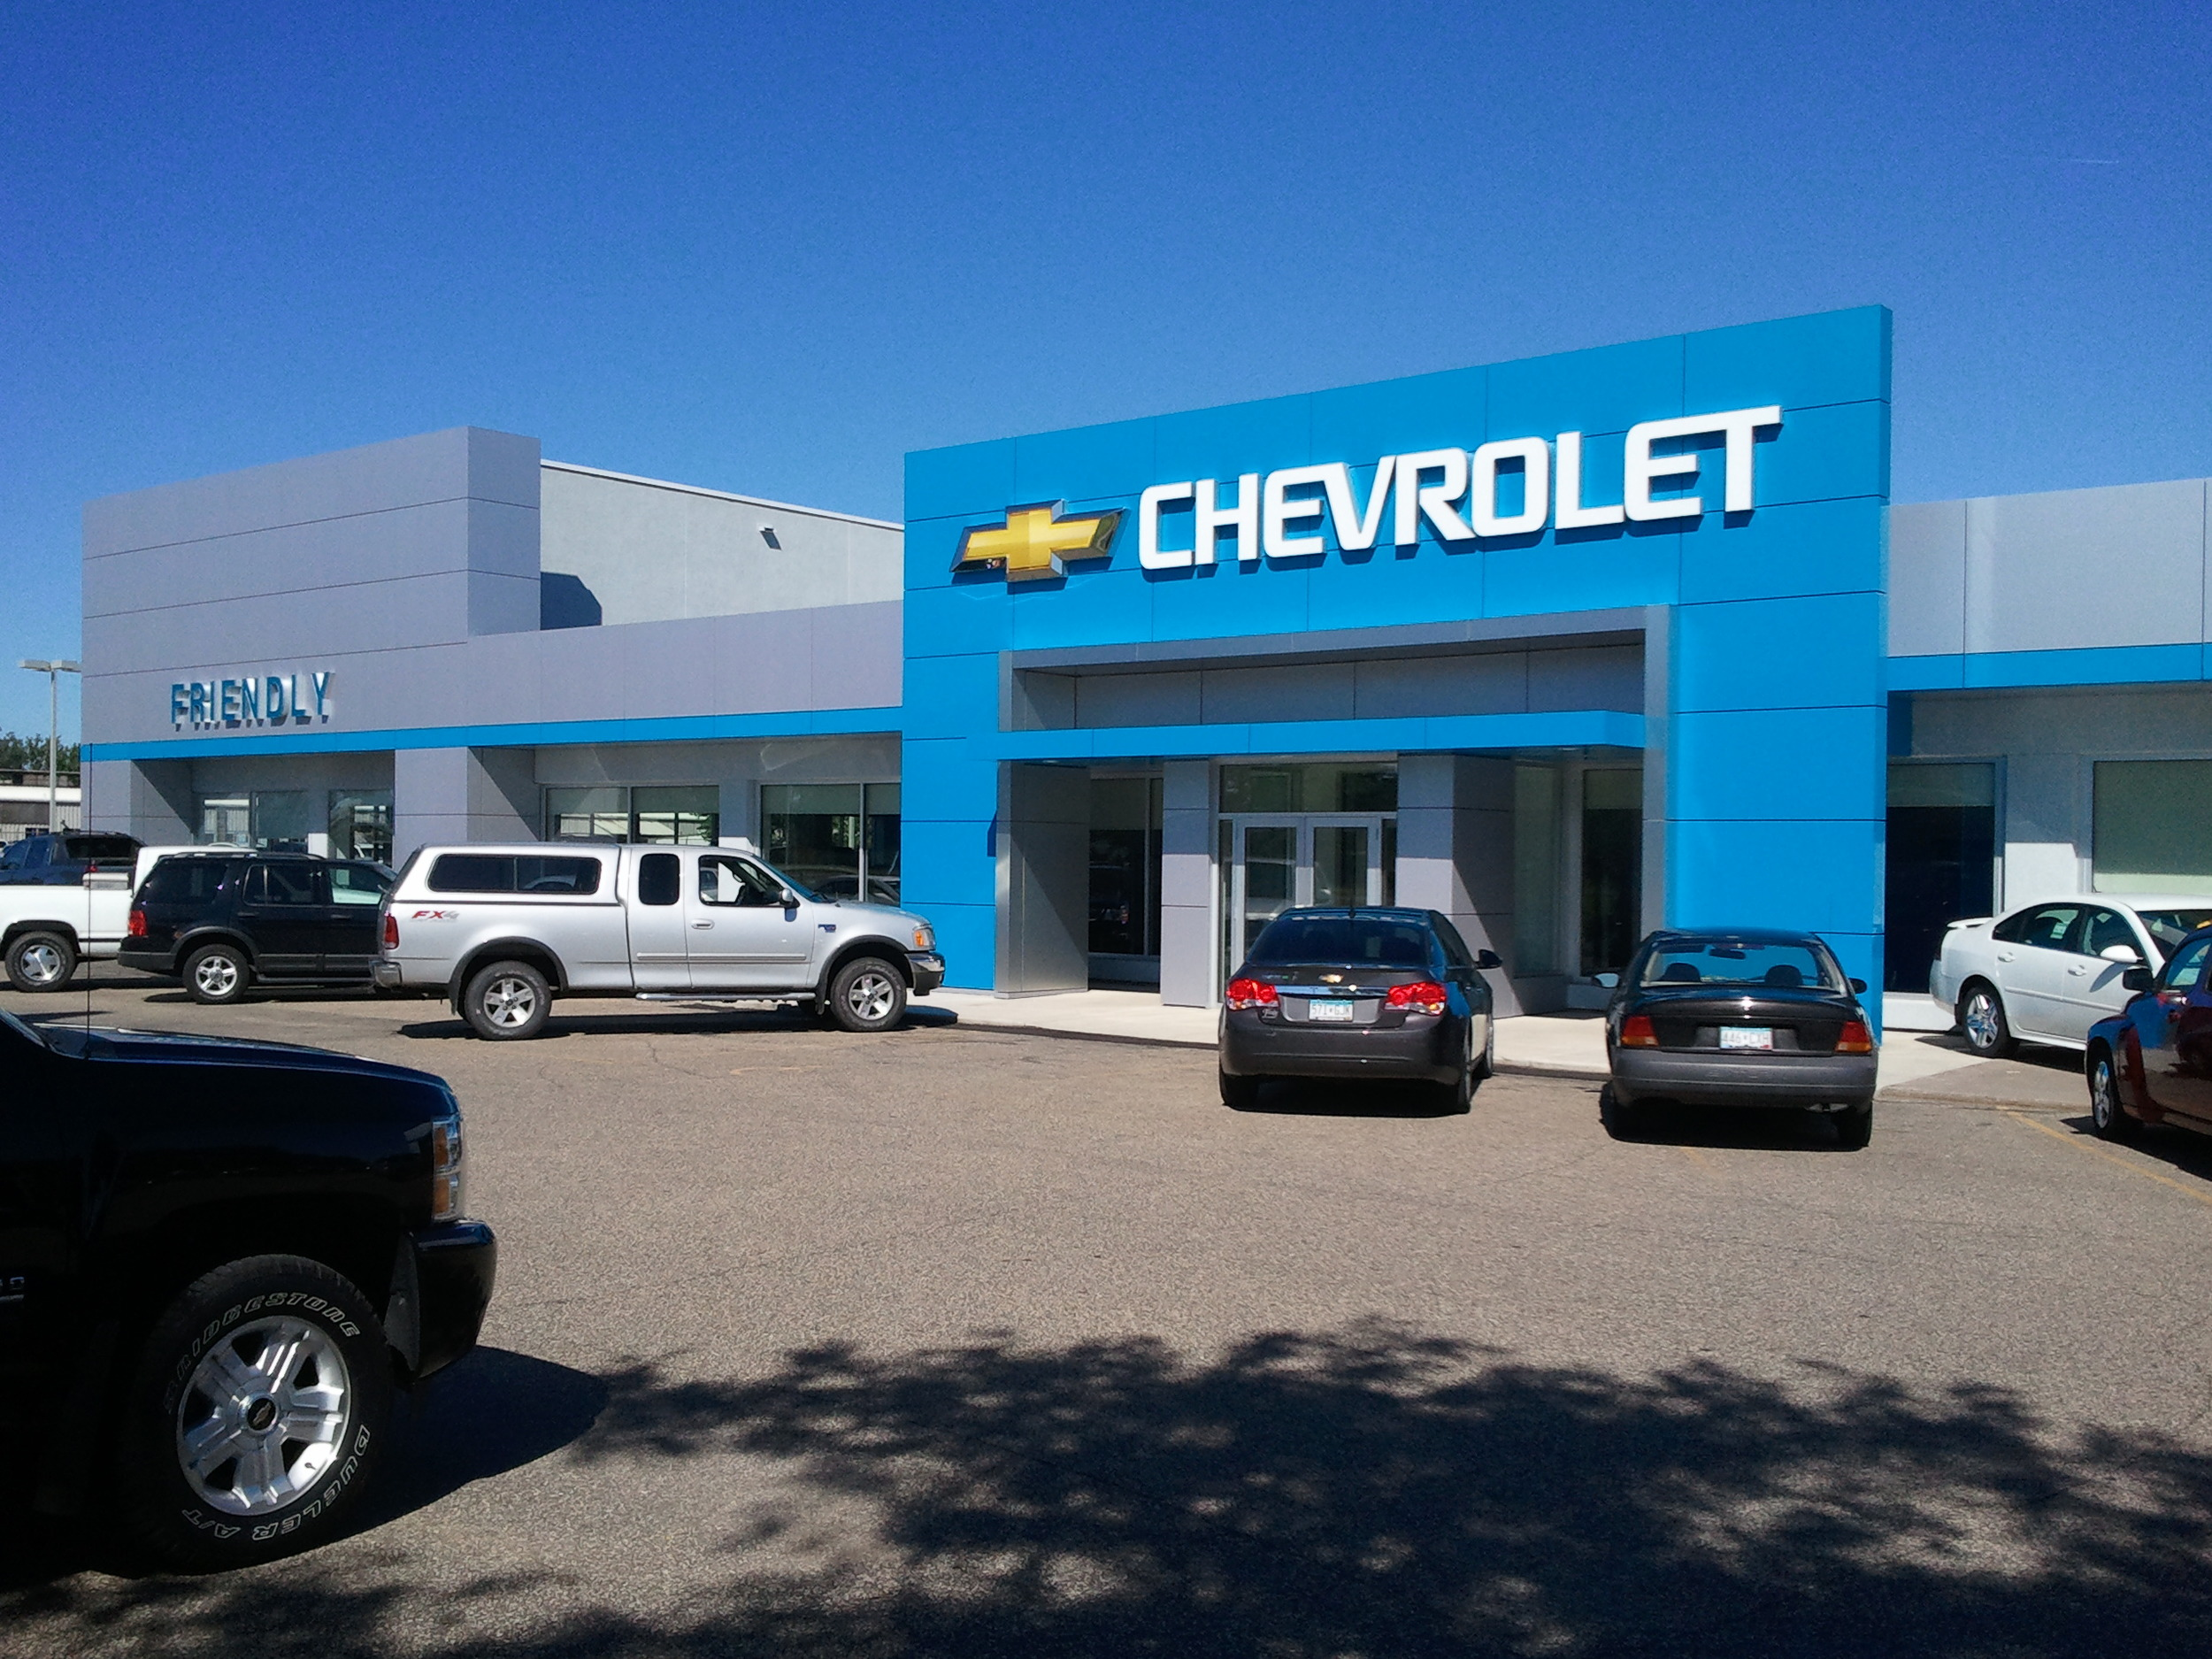 Friendly Chevrolet Ebe Fridley Mn Darwin Lindahl Architects P A